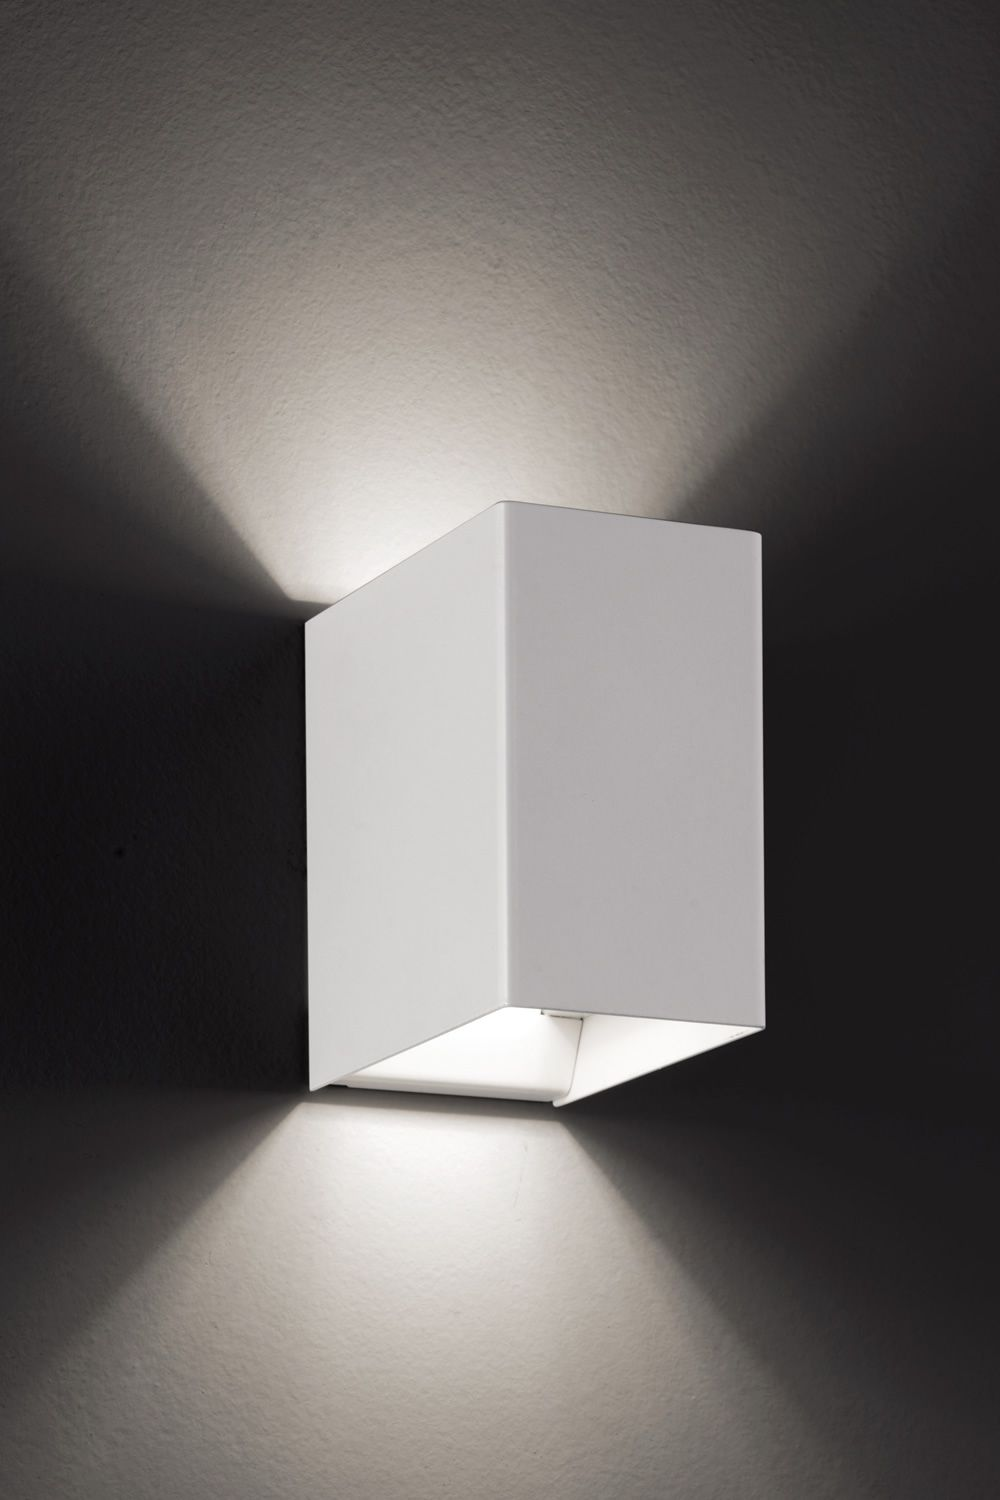 laser cube lampe design murale en m tal ampoule led disponible en diff rentes couleurs et. Black Bedroom Furniture Sets. Home Design Ideas